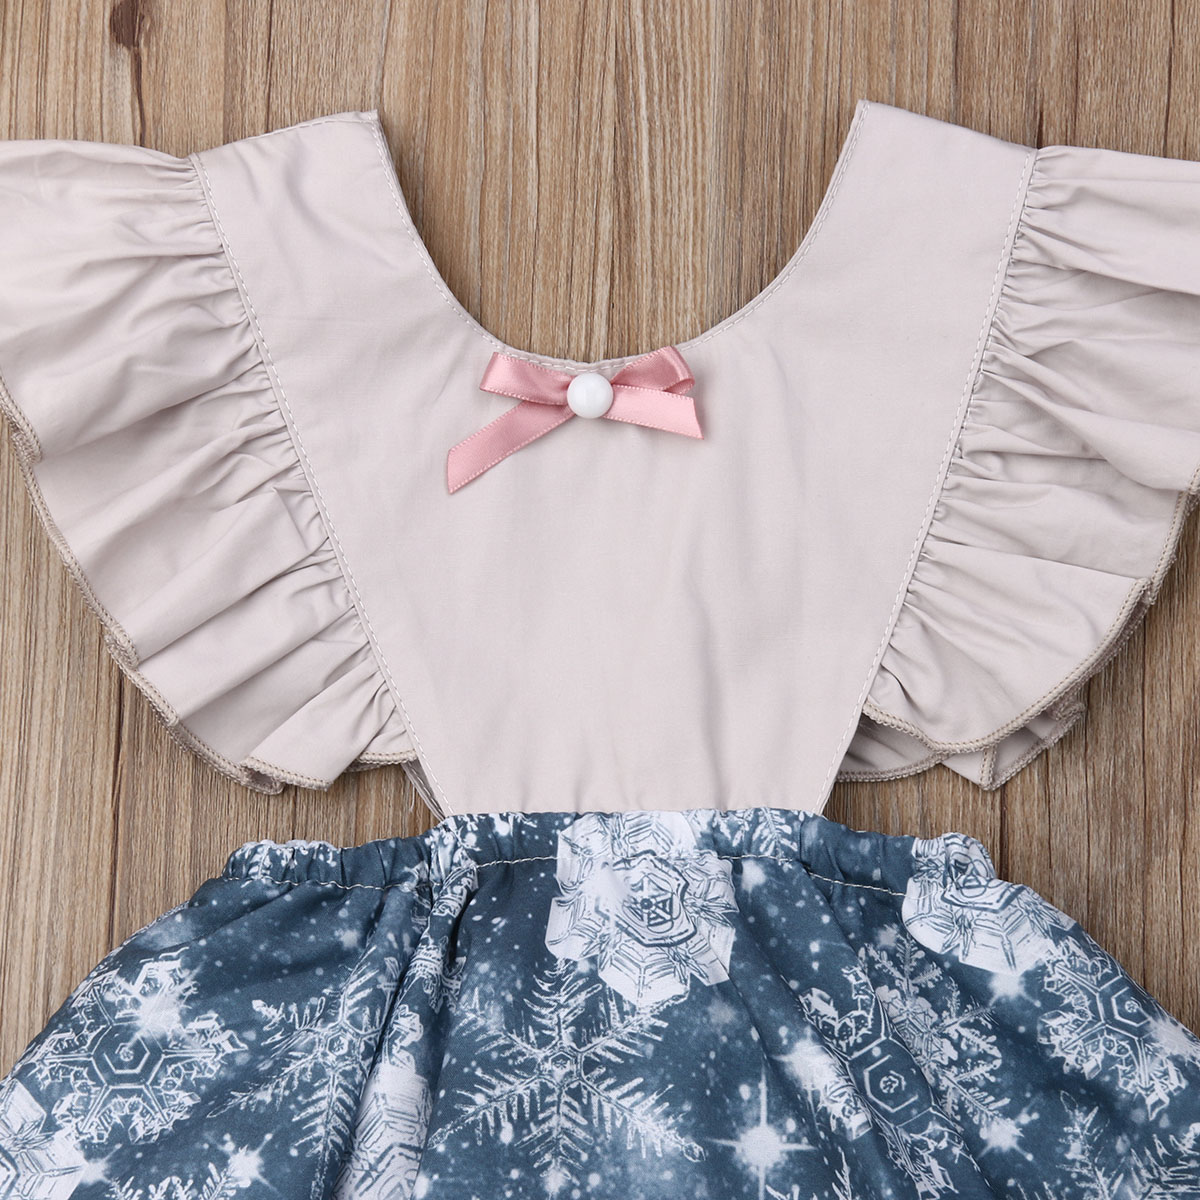 0 24M Newborn Baby Girls Ruffles Rompers Princess Tulle Jumpsuit Playsuit Snowflake Christmas Baby Girl Costumes Clothes in Rompers from Mother Kids